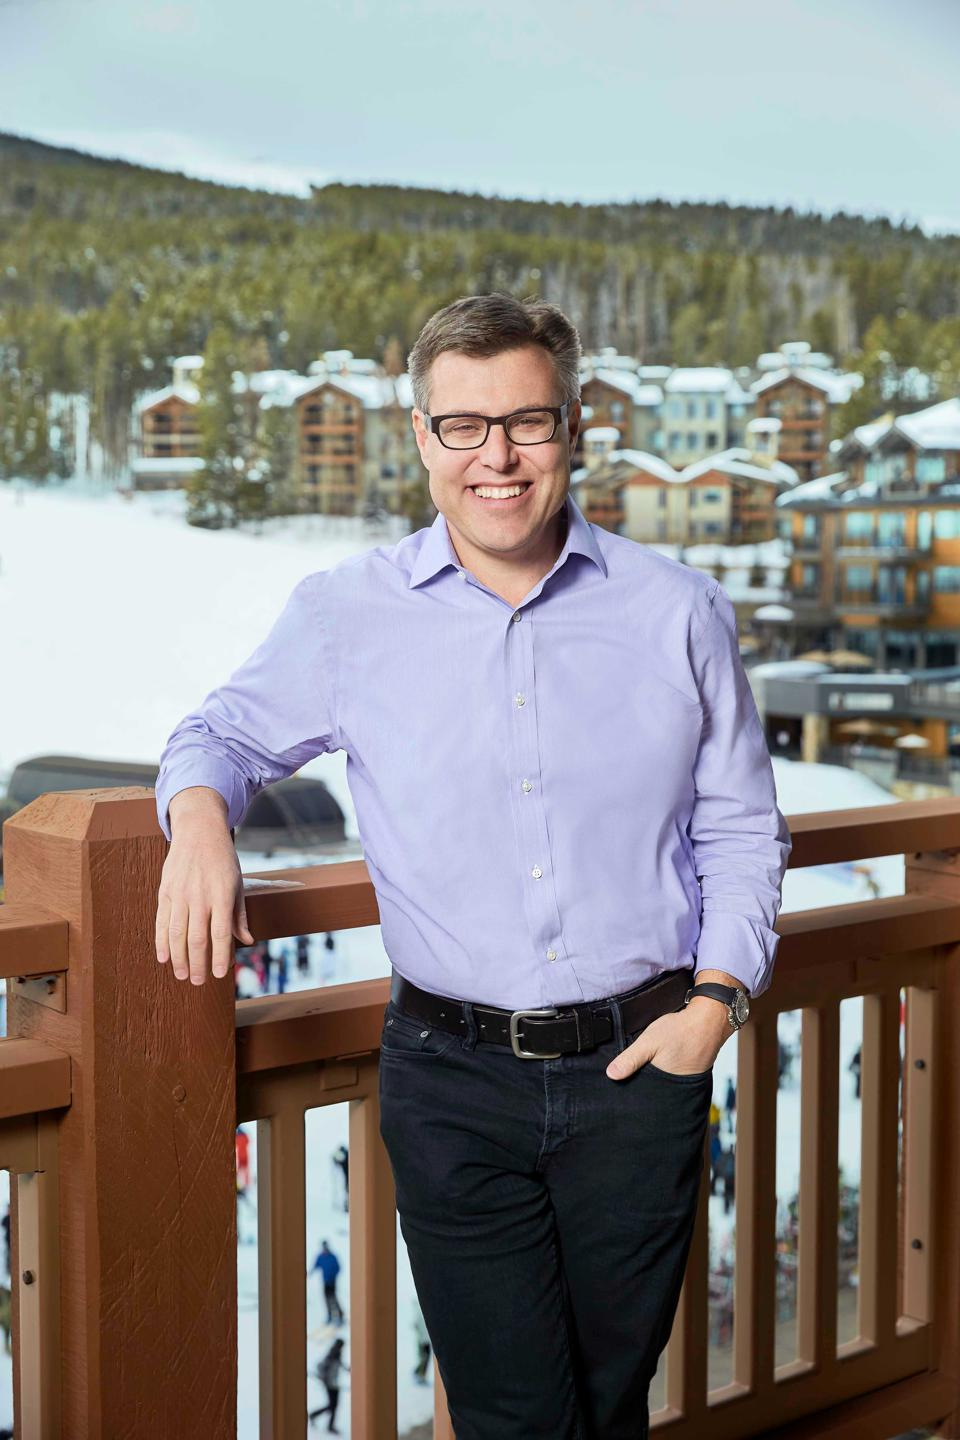 Rob Katz, CEO of Vail Resorts on a deck.